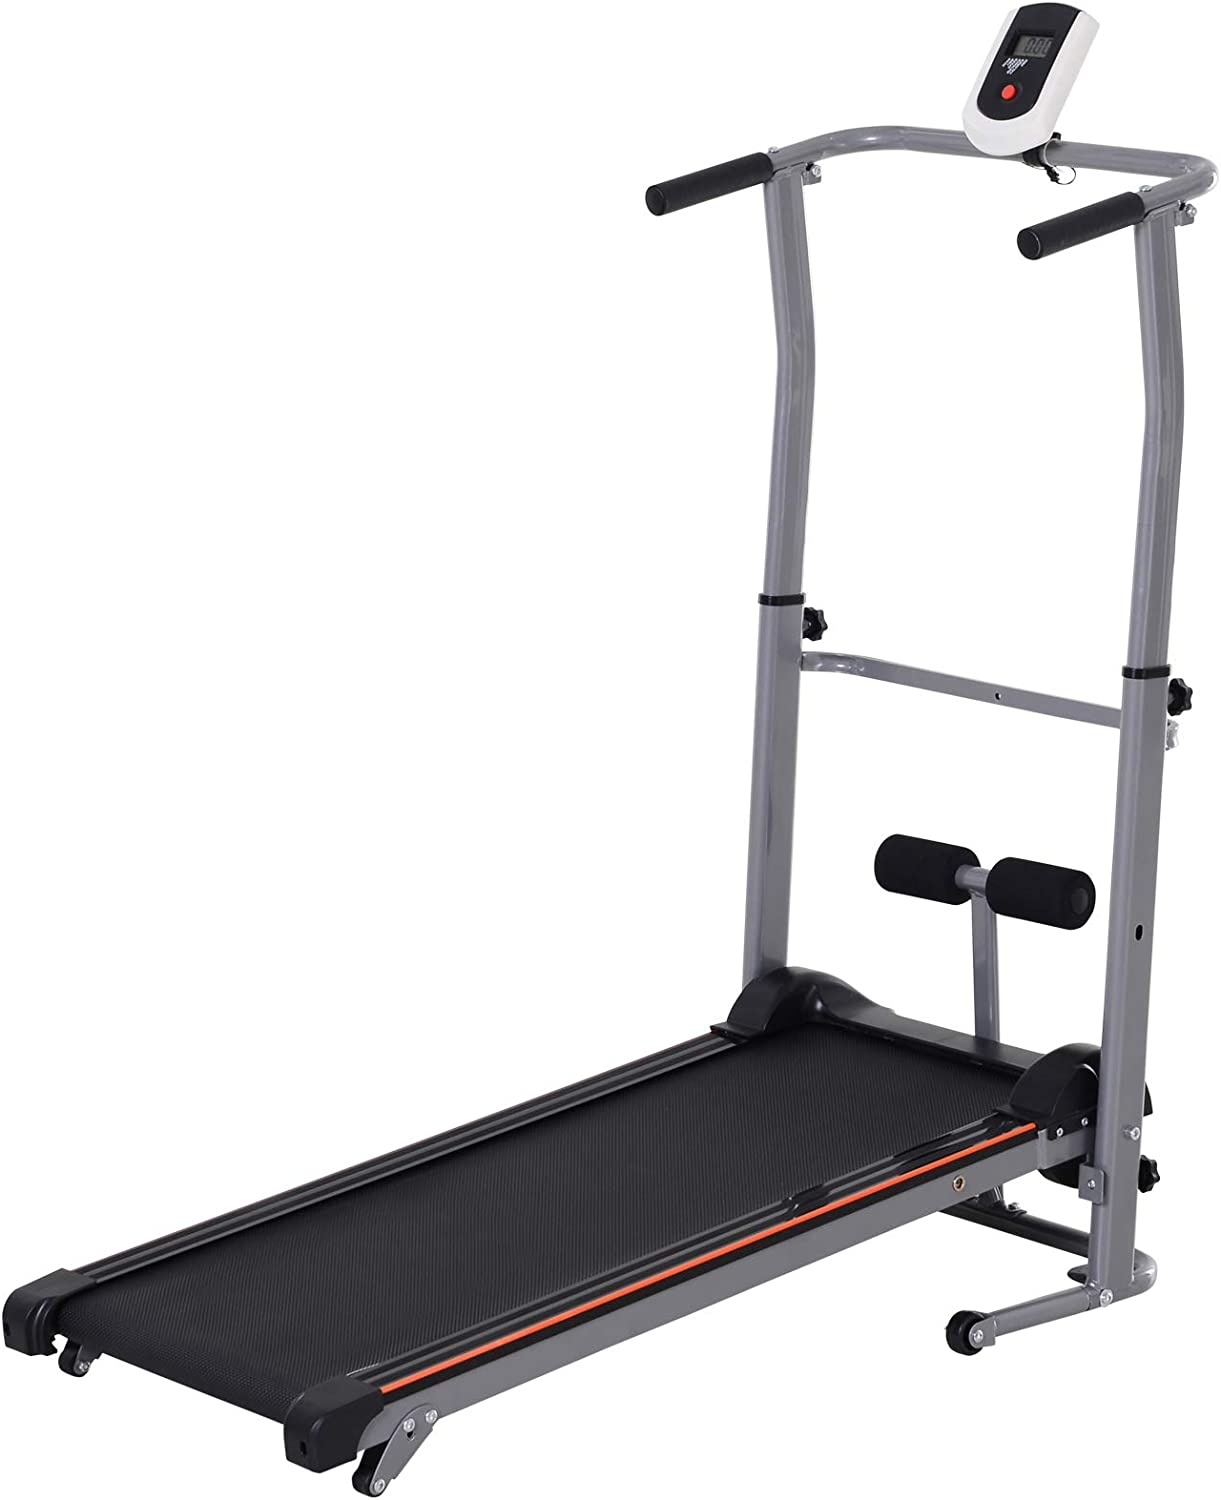 Weslo CardioStride 4.0 Manual Folding Treadmill with Adjustable Incline and LCD